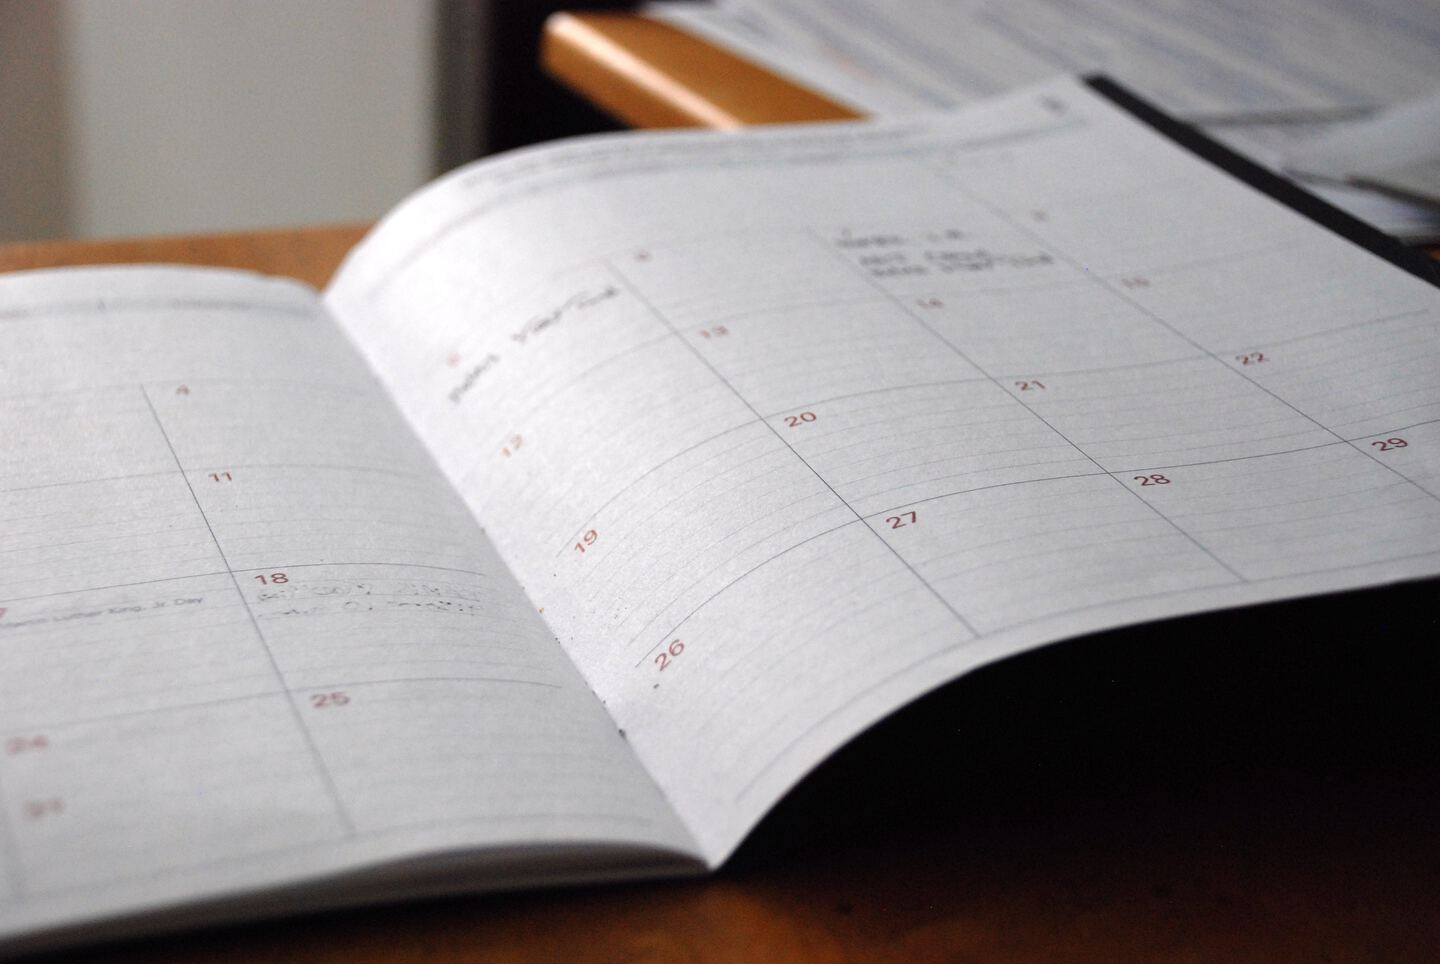 planner lying on table showing a calendar